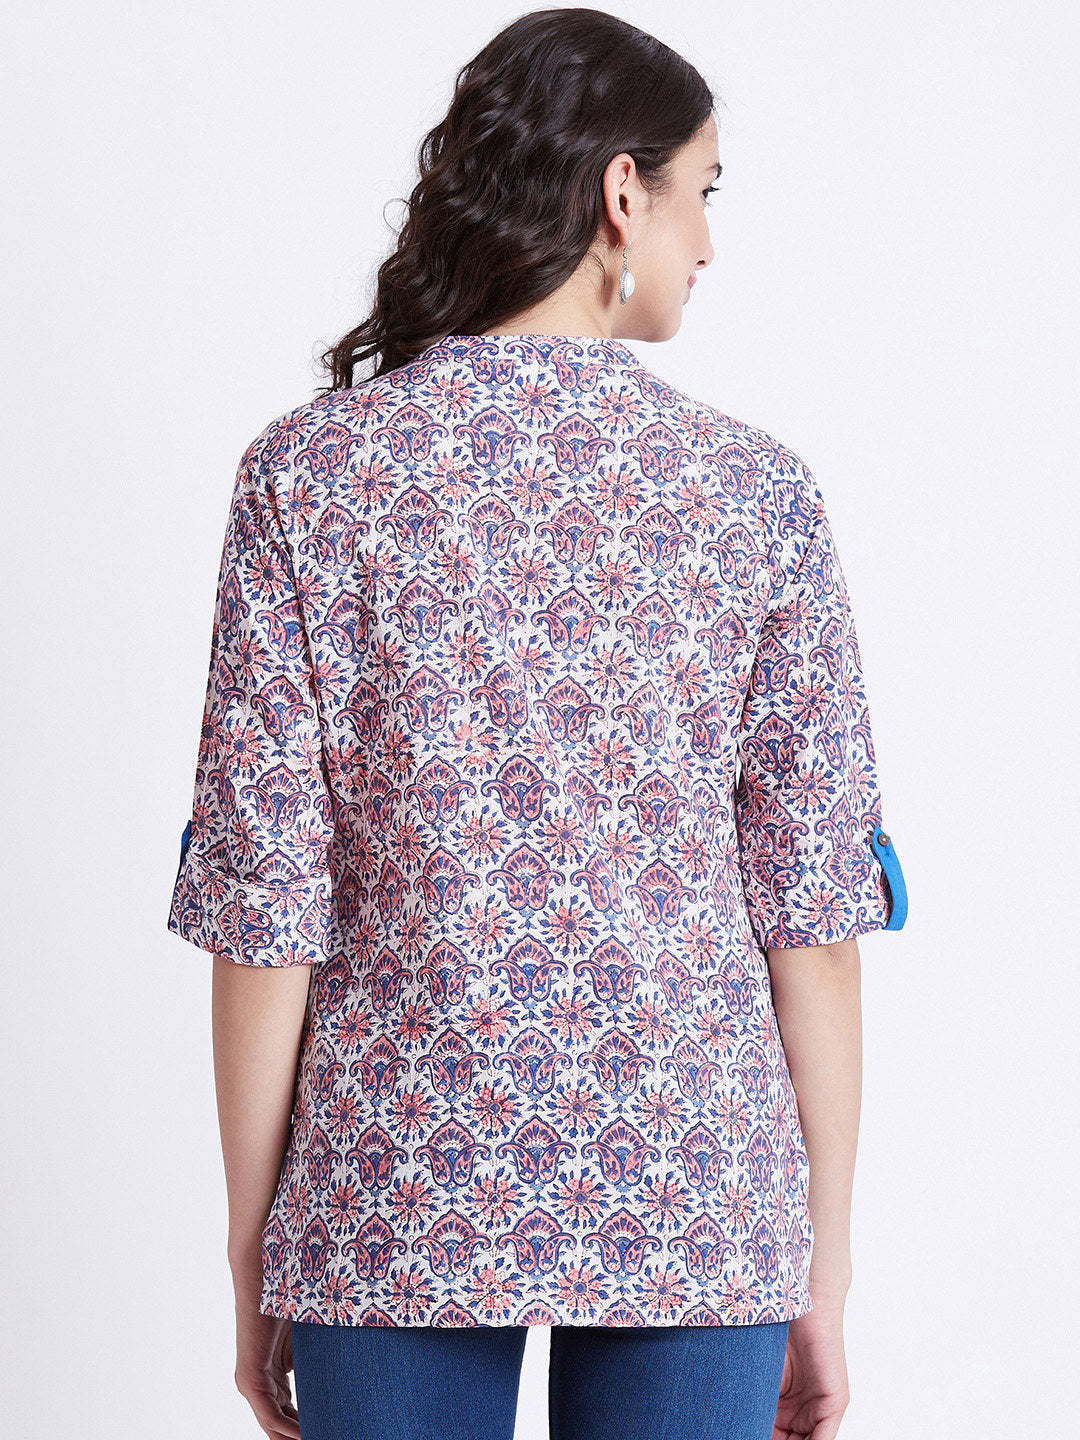 Hand Block Printed Indian tunic/ kurti in floral design